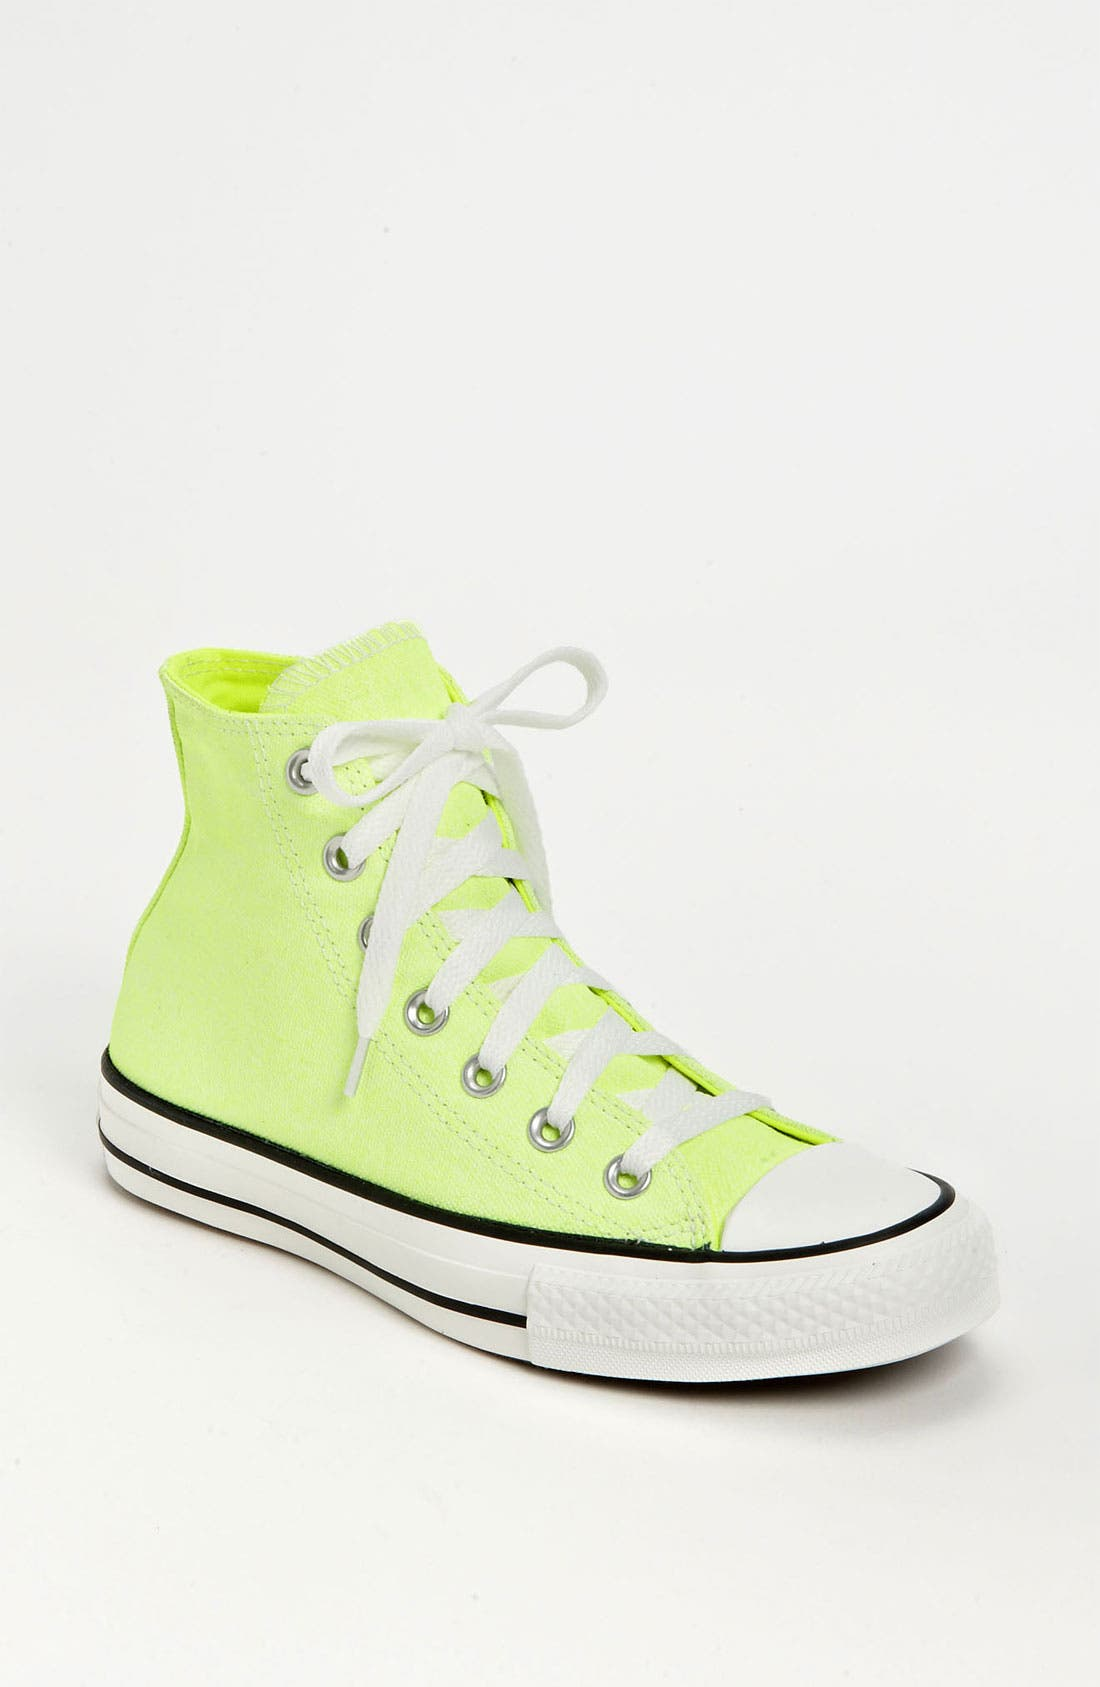 Main Image - Converse Chuck Taylor® All Star® Washed Neon High Top Sneaker (Women)